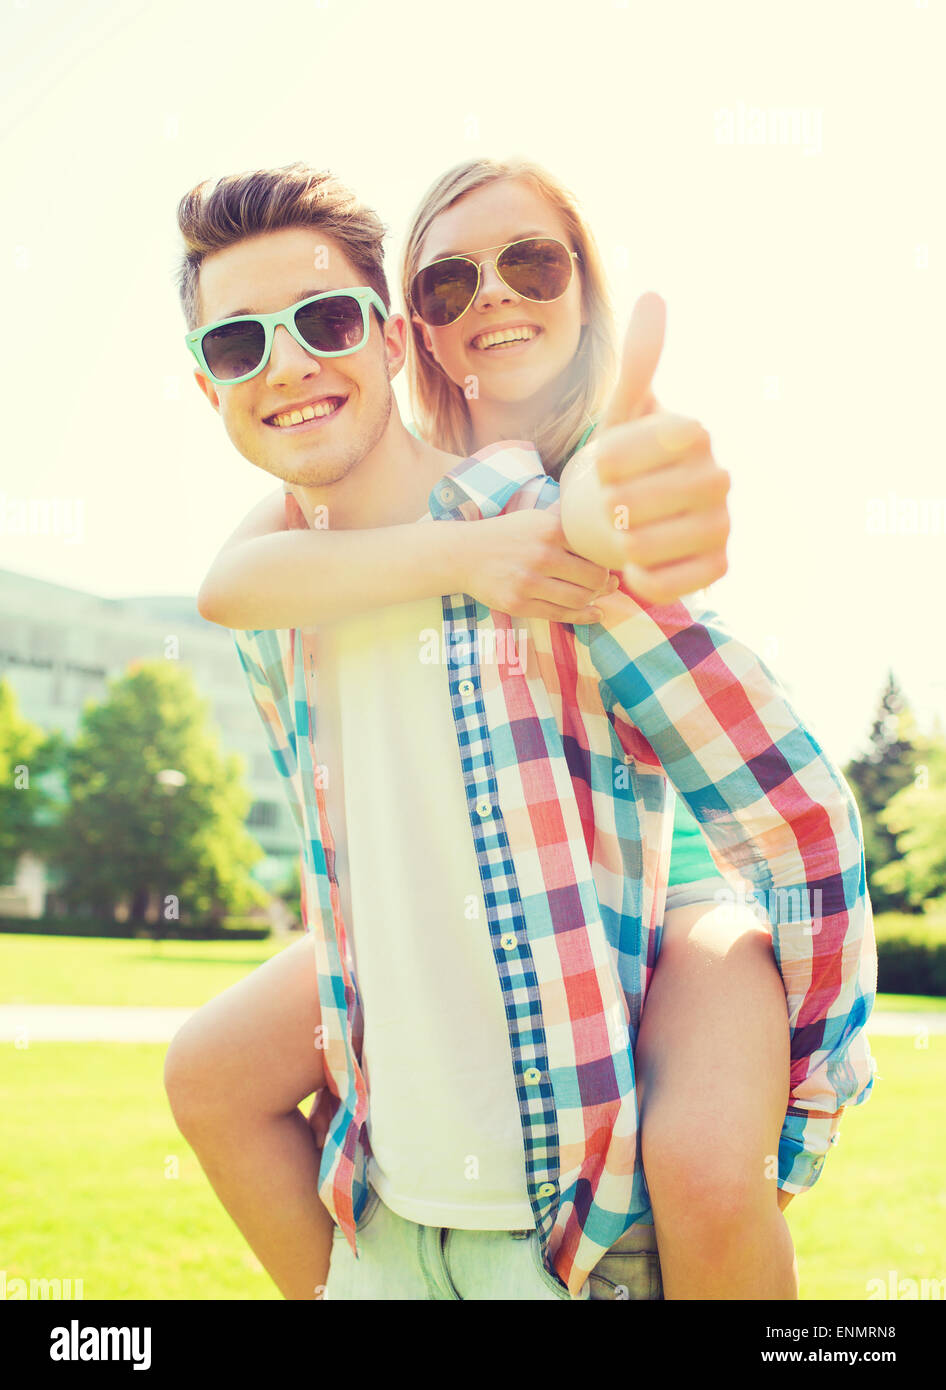 smiling couple having fun and showing thumbs up - Stock Image